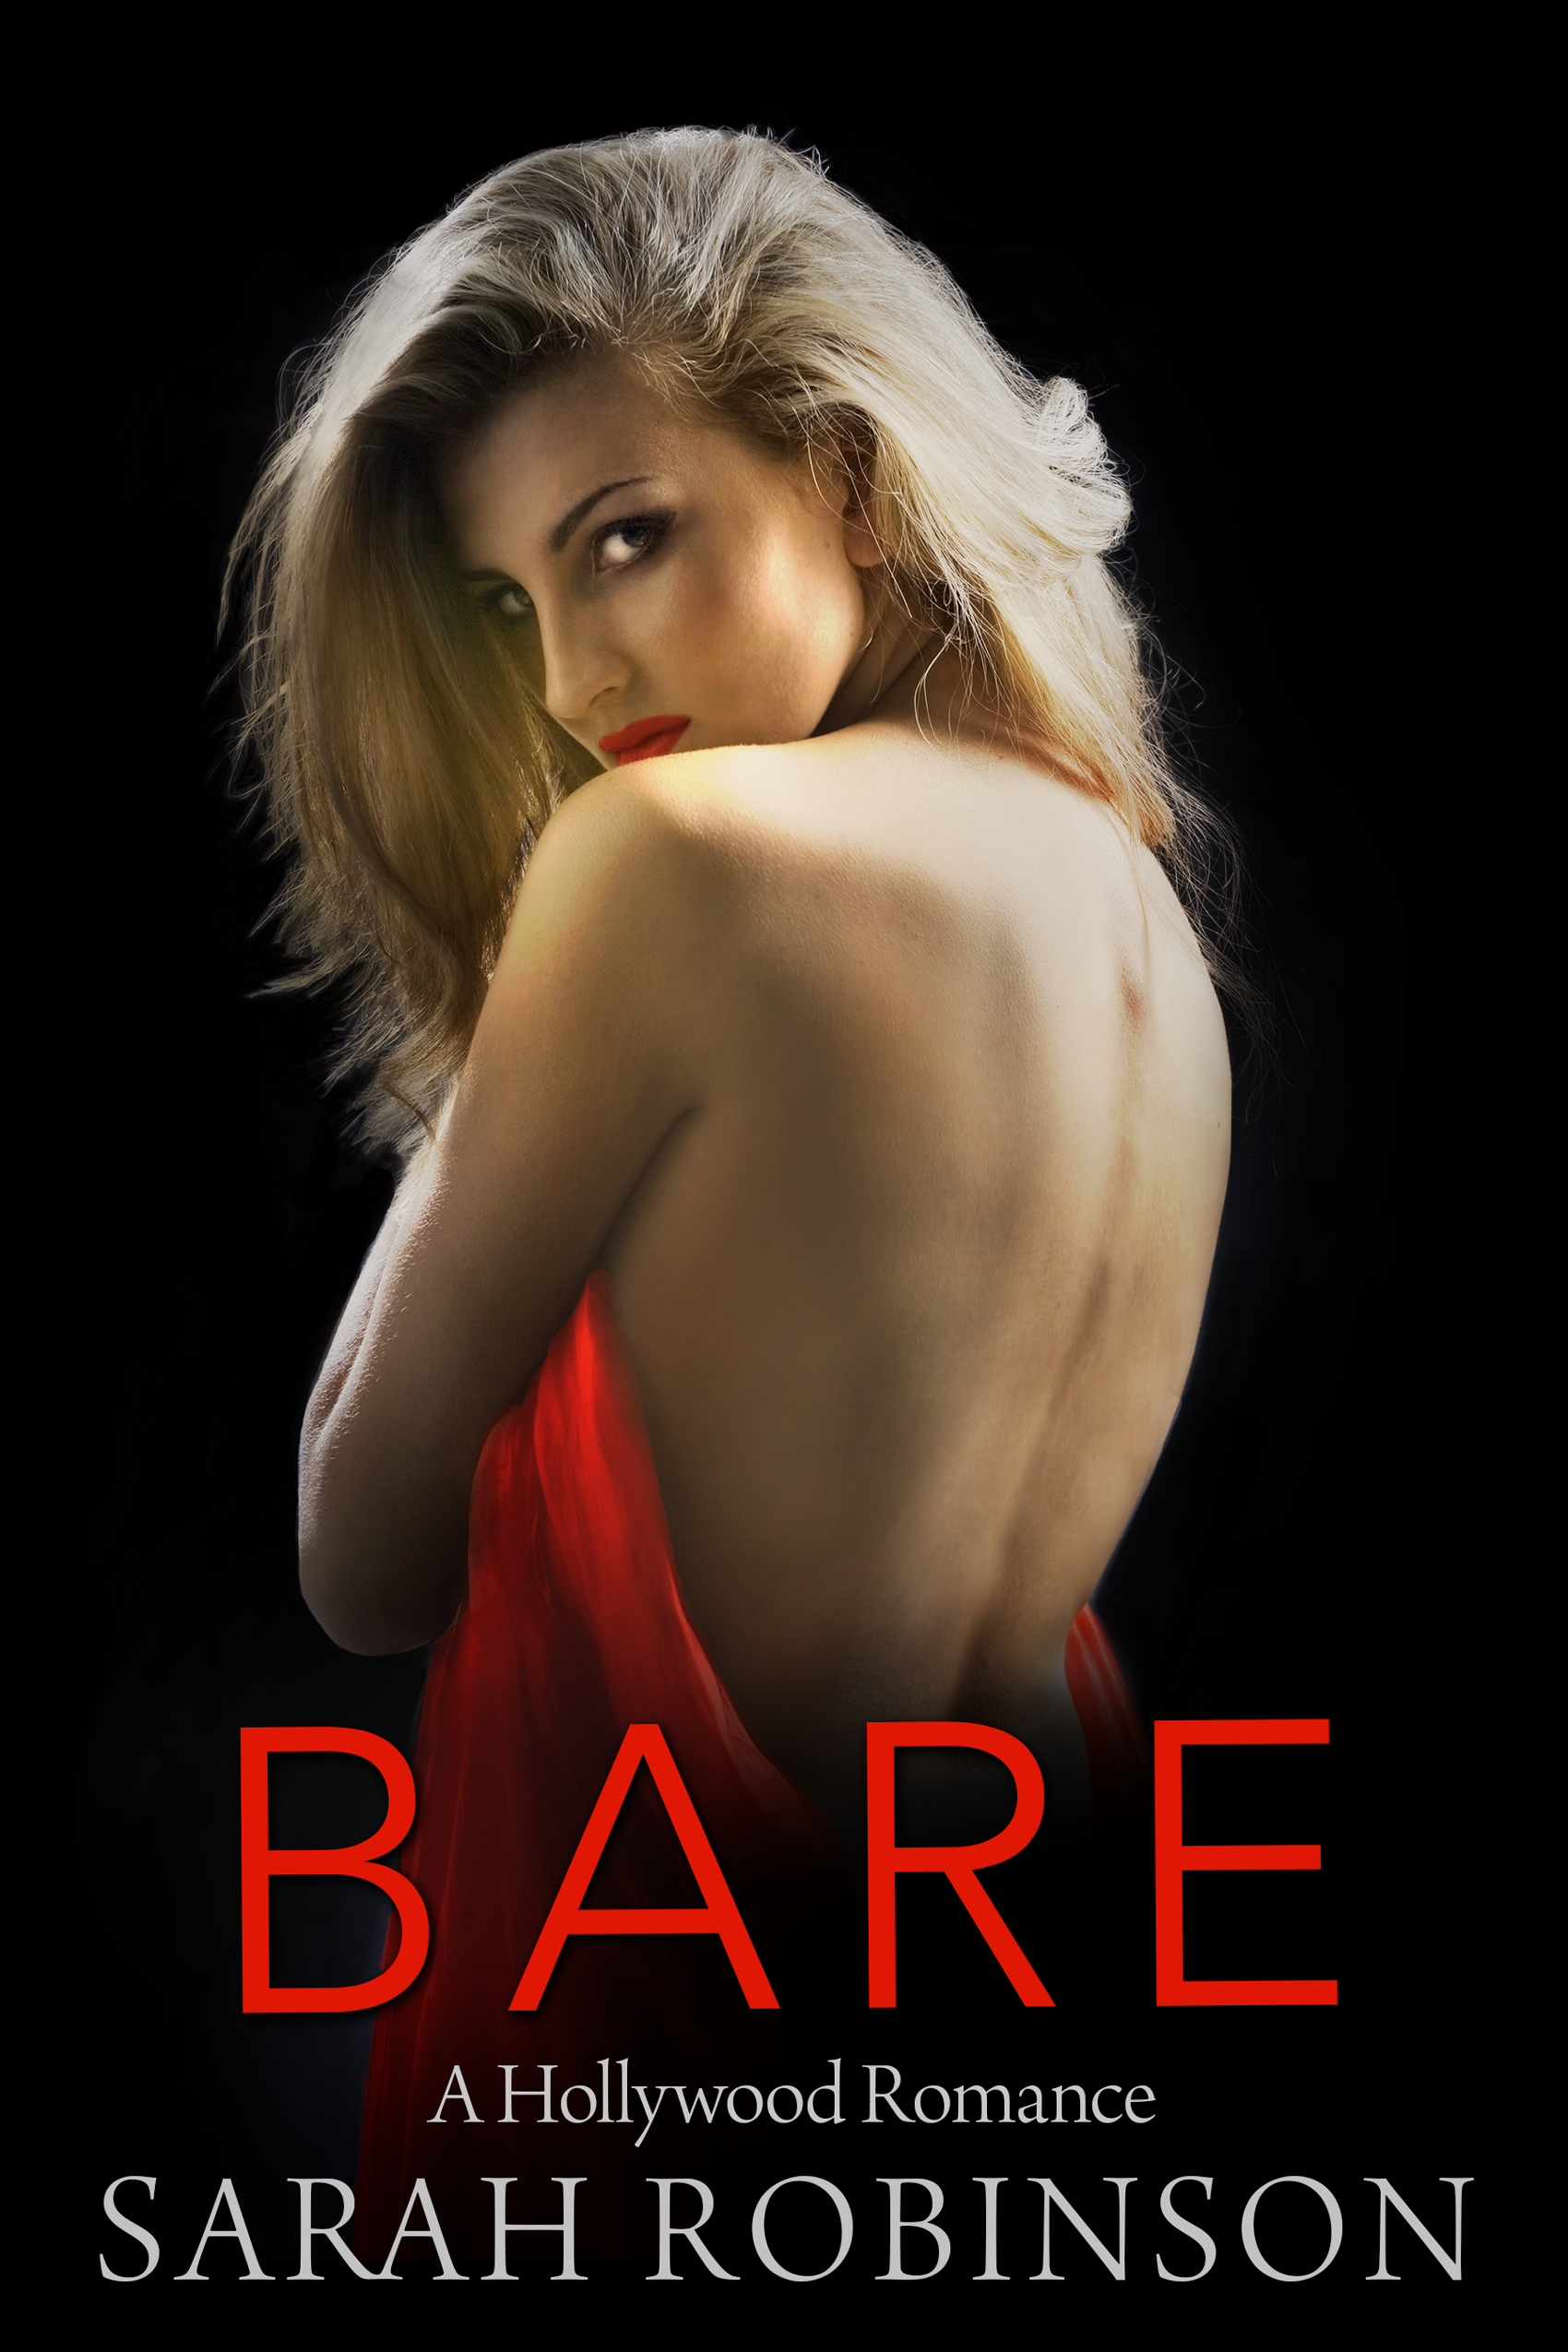 REVIEW: Bare by Sarah Robinson